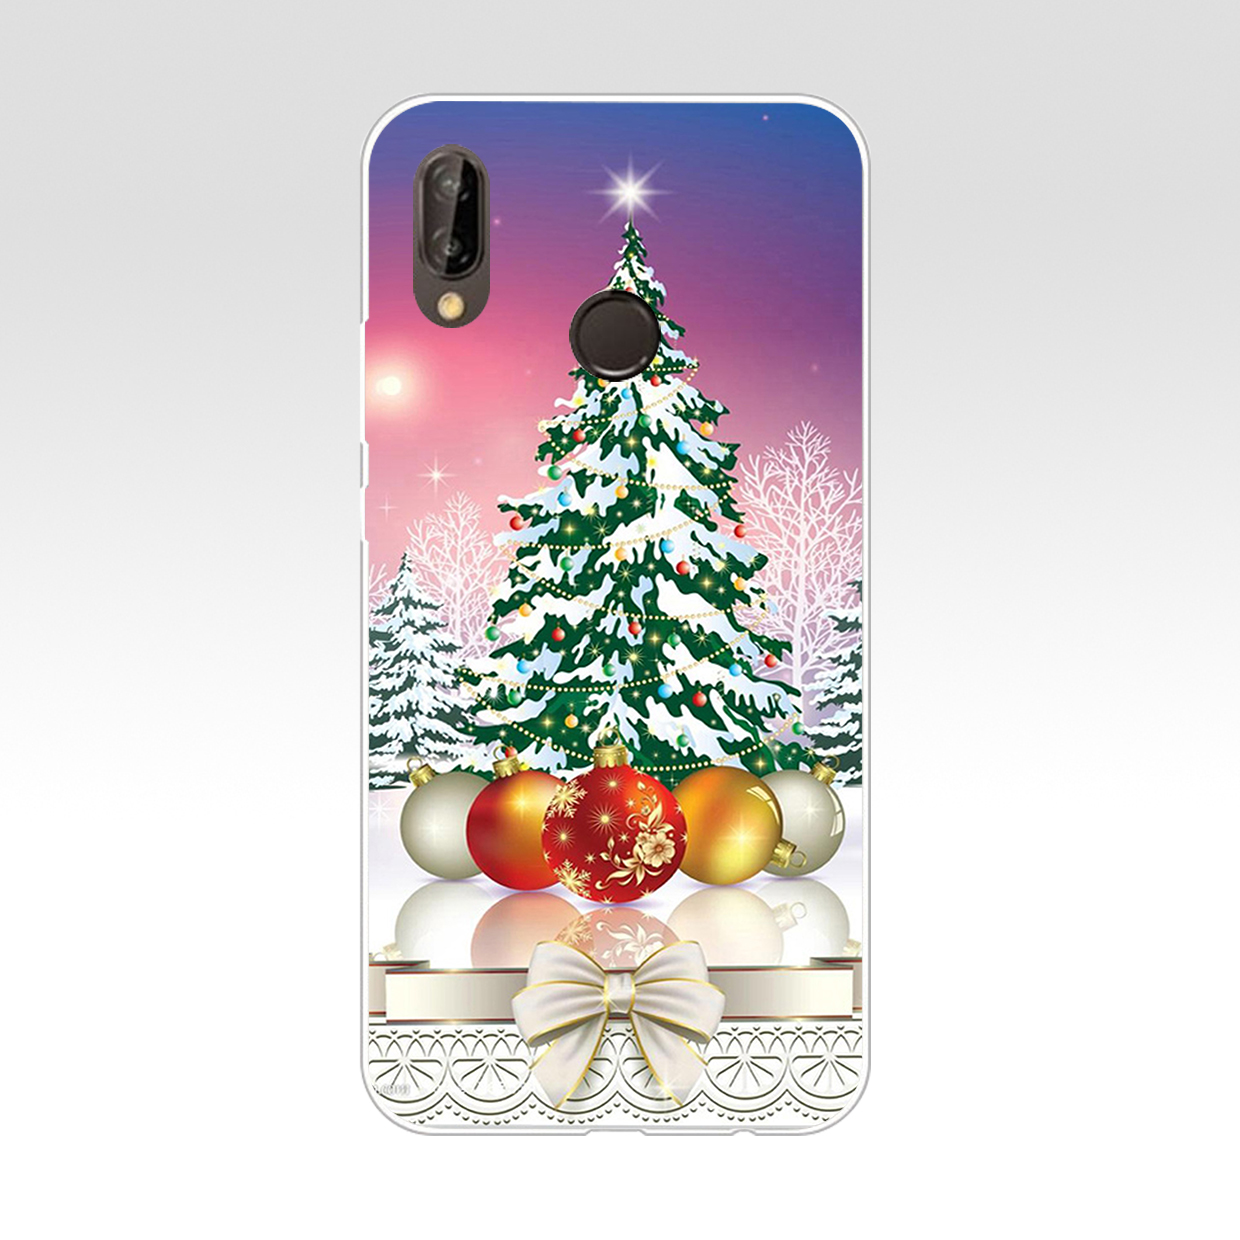 A New Year Christmas Hard Transparent Cover Case For Huawei P8 P20 Honor 9 Lite Mate 10 Pro Y6 Y5 2017